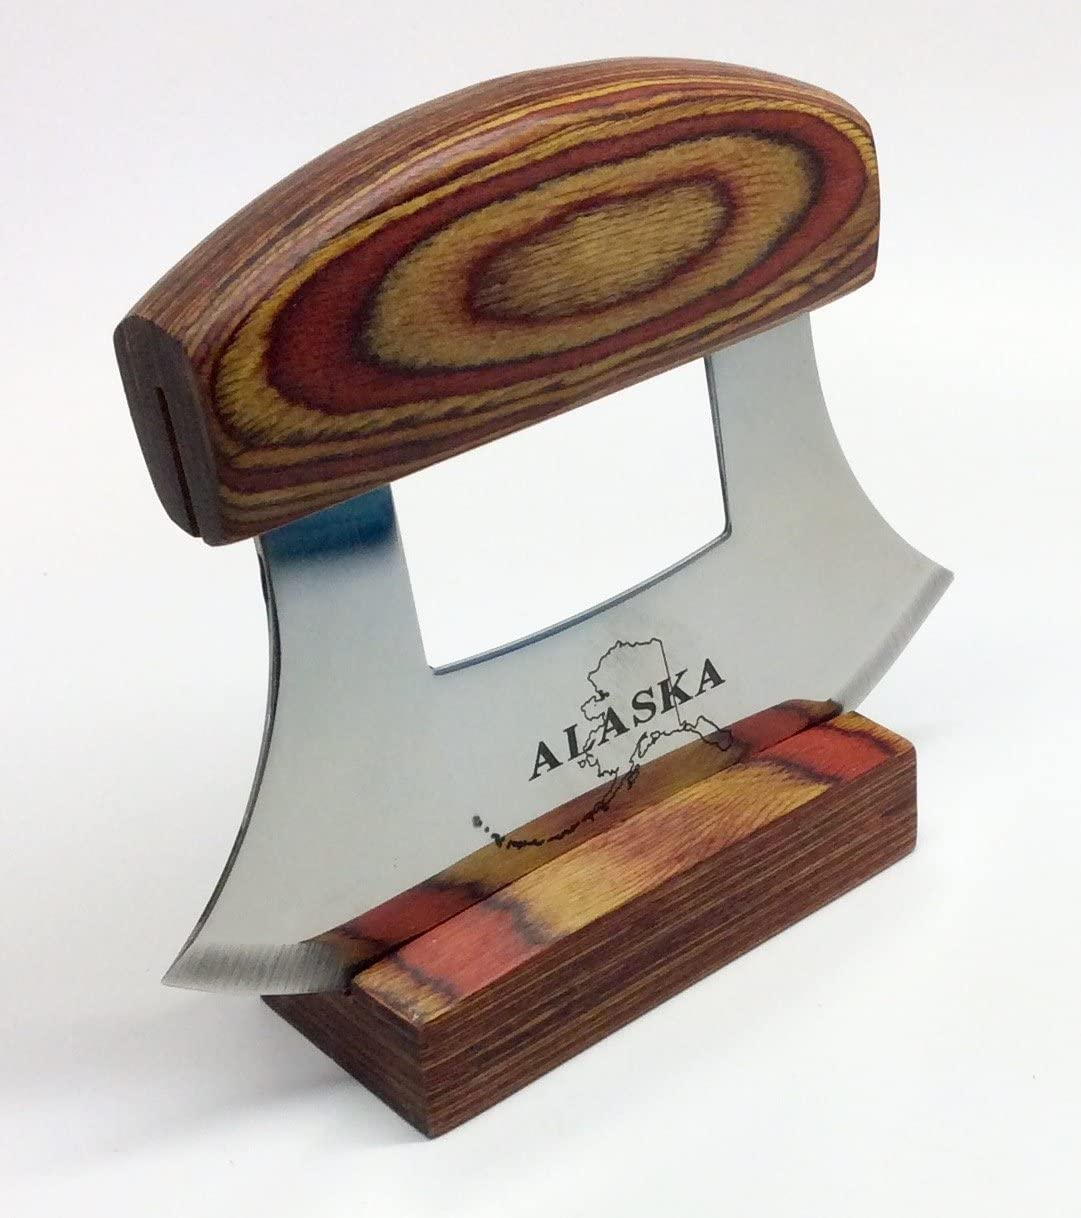 Alaska Ulu Knife with Natural Exotic Wood Stand Etched Blade